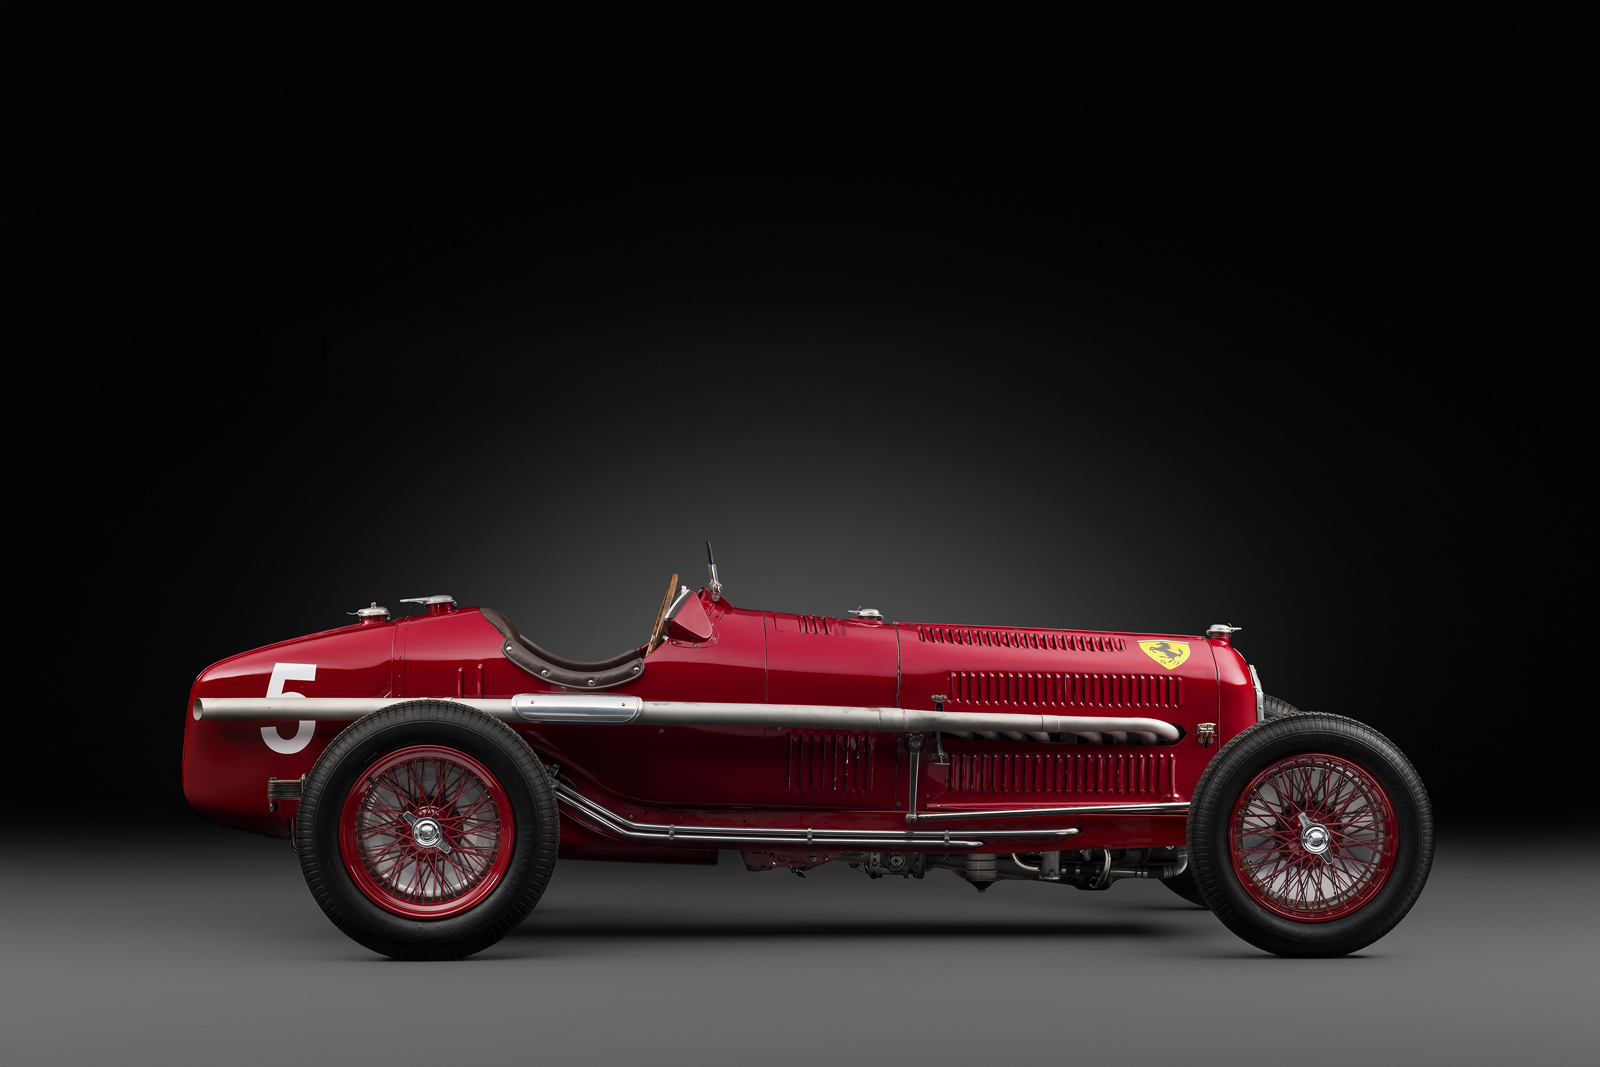 rare 1934 alfa romeo tipo b p3 grand prix racer for sale in paris carscoops. Black Bedroom Furniture Sets. Home Design Ideas